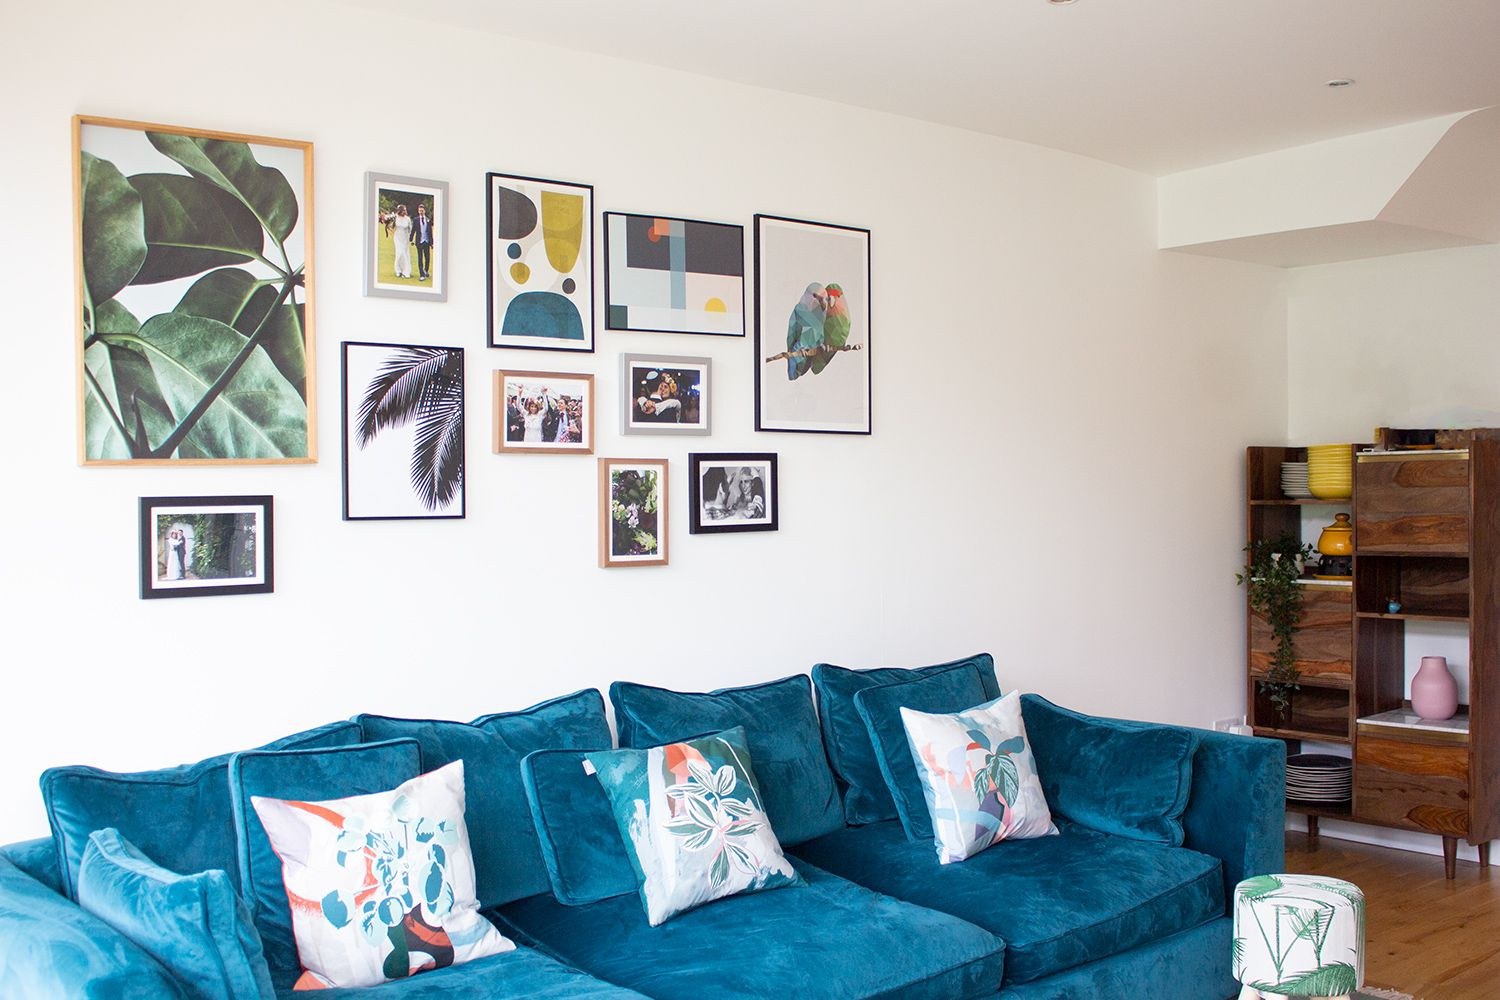 An view of the teal velvet sofa and the gallery wall at an angle.